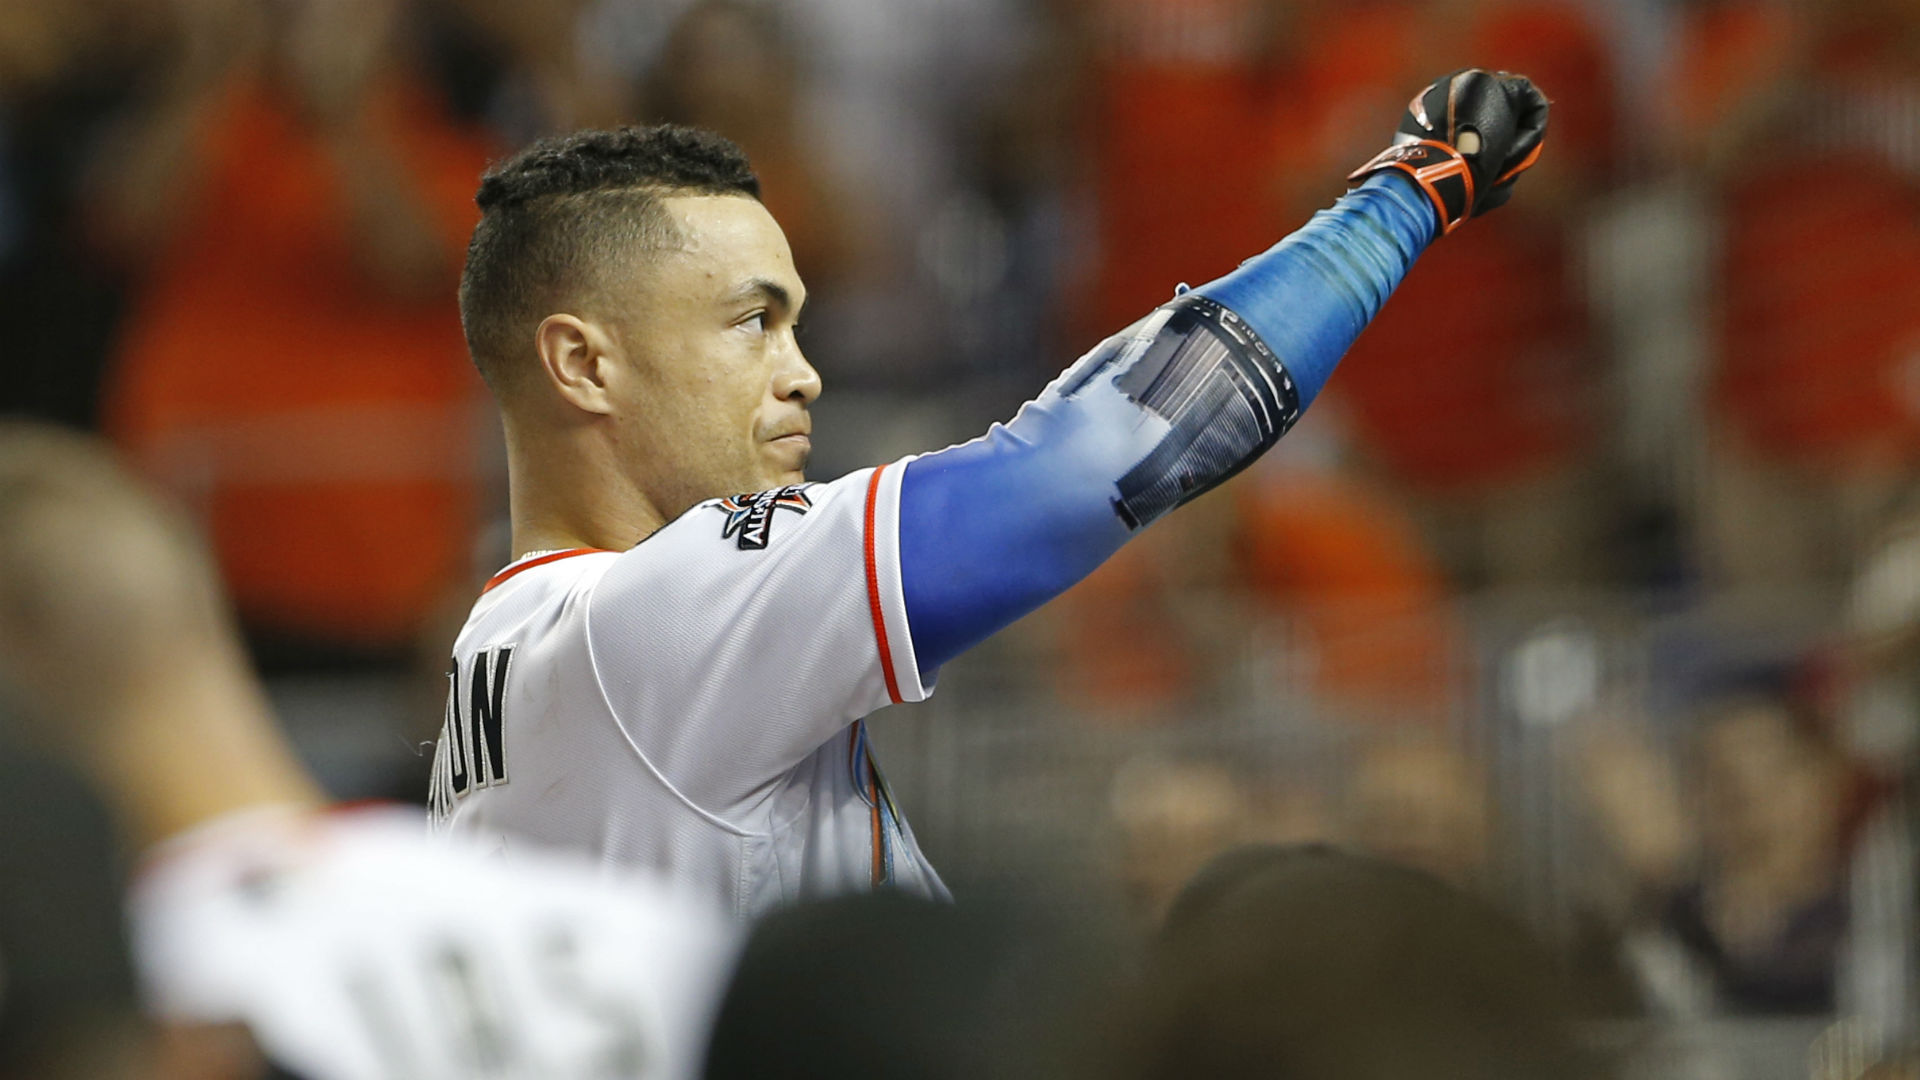 Giancarlo Stanton ends with 59 HRs, Braves beat Marlins